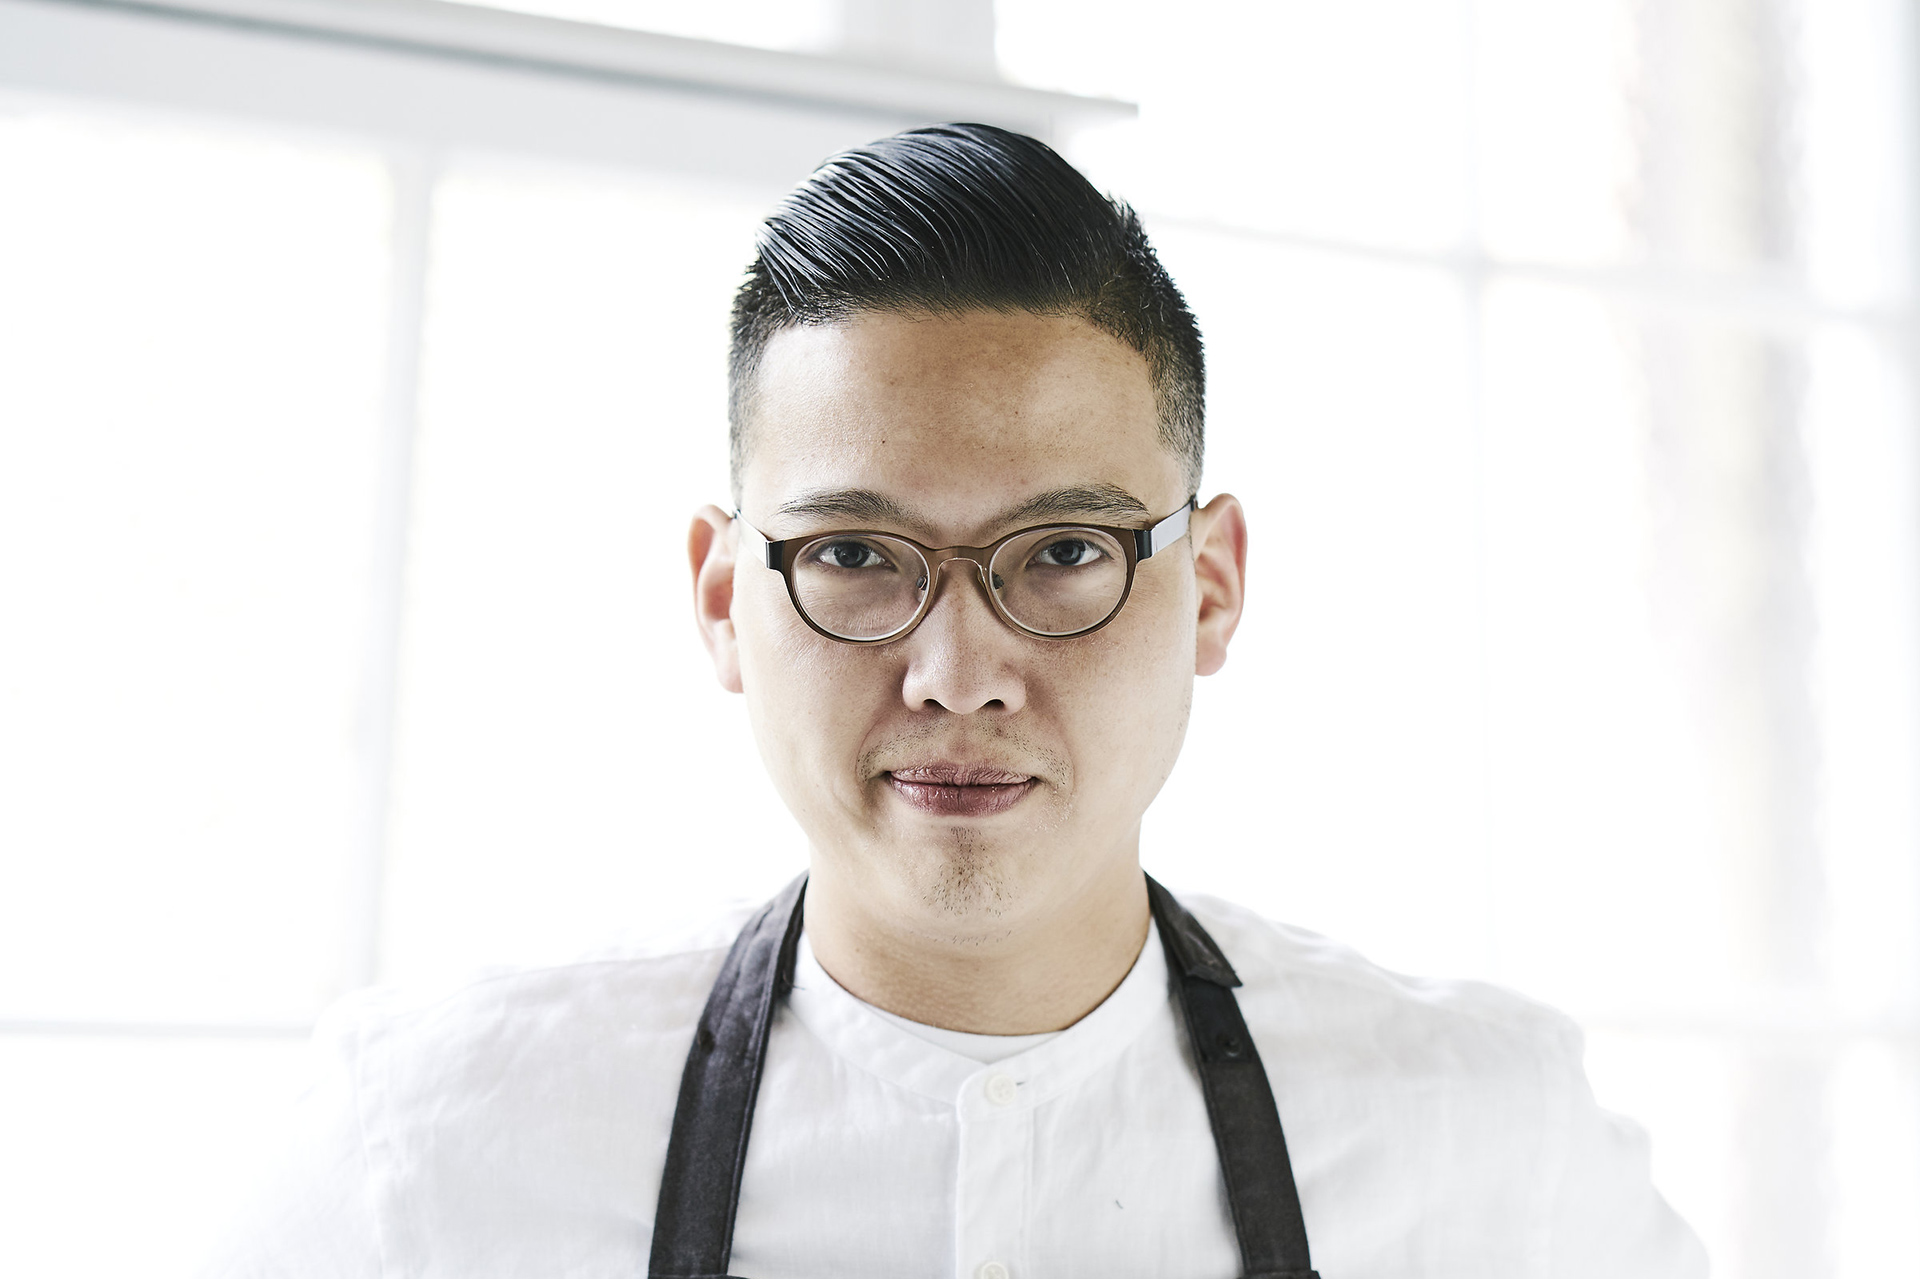 Melbourne chef Victor Liong